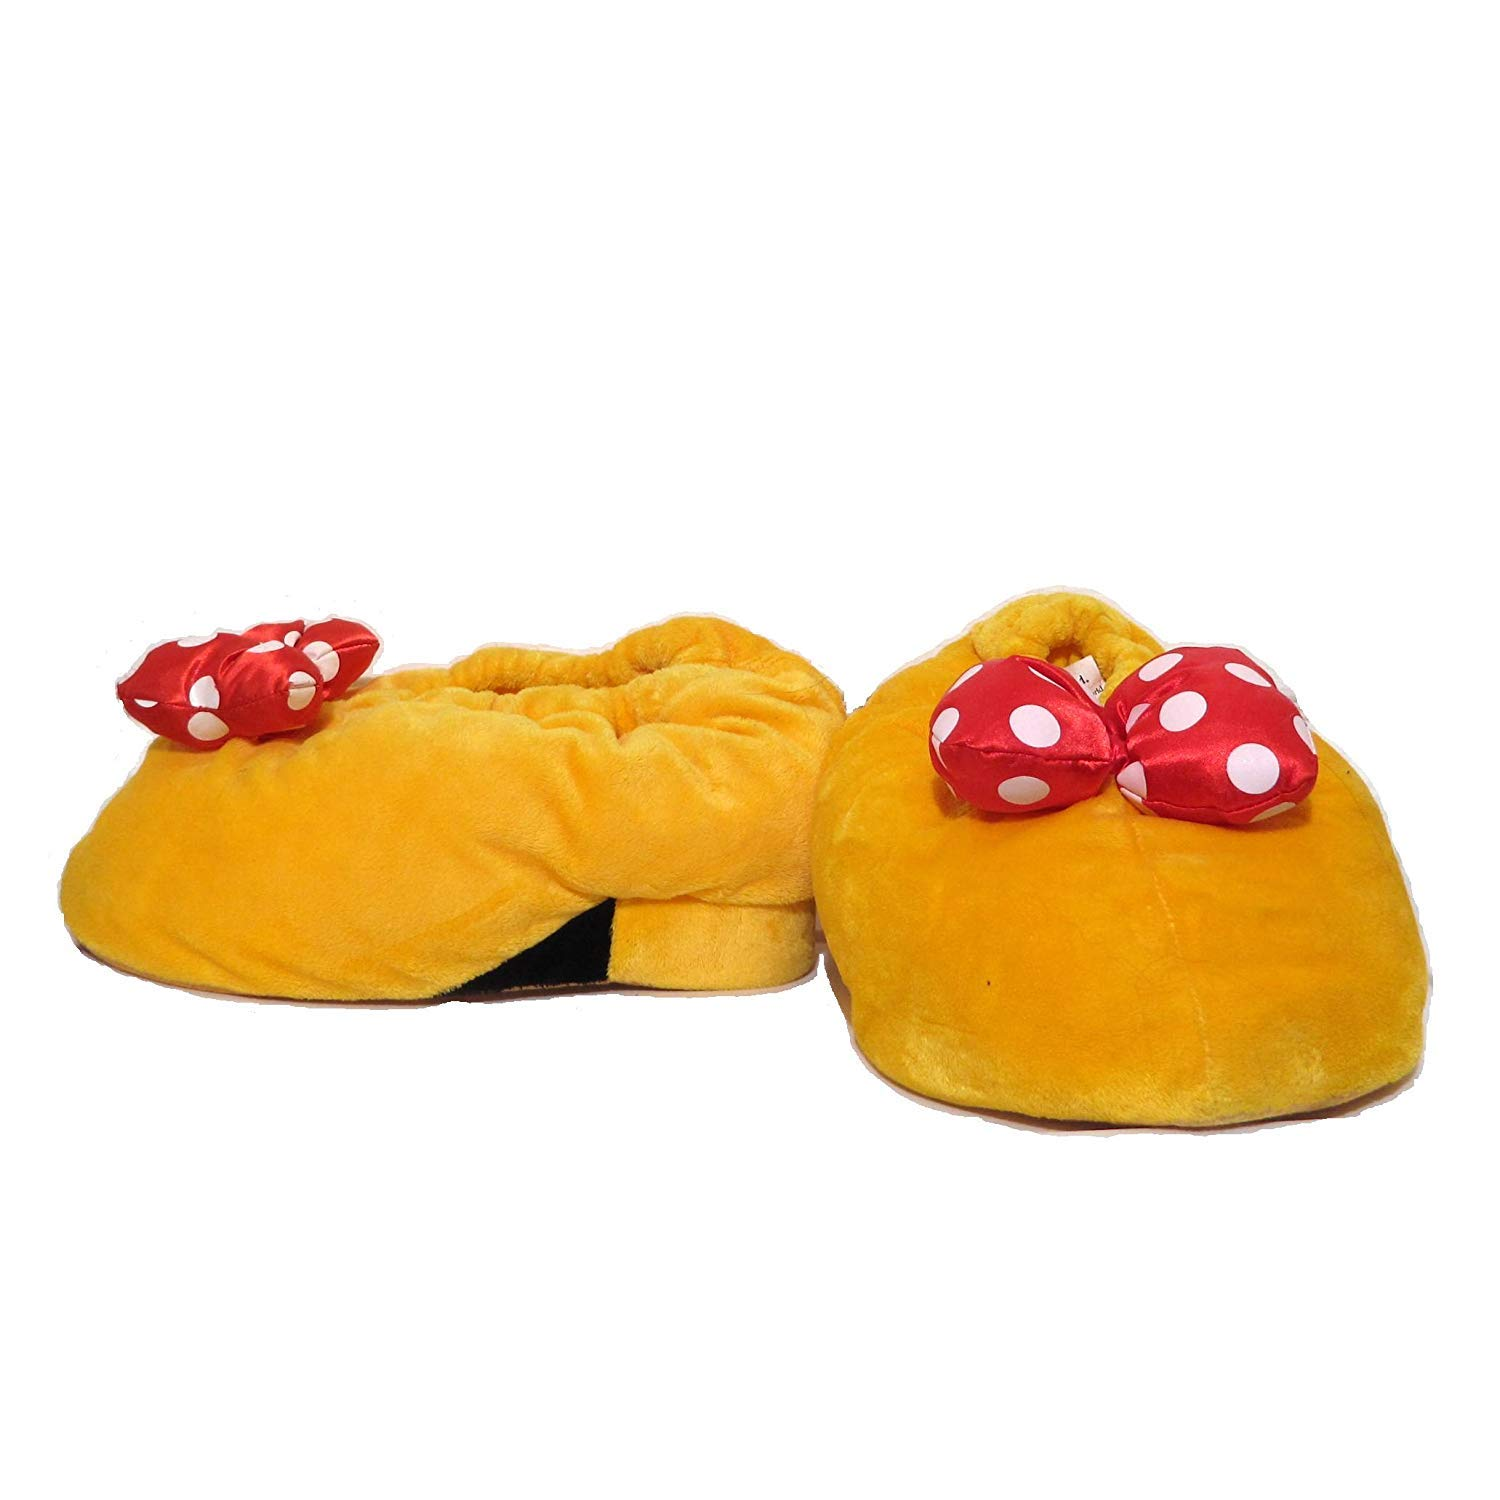 S-839 840 841 NWT Disney Minnie Mouse Girl/'s size 7//8 Slippers Just Too Cute!